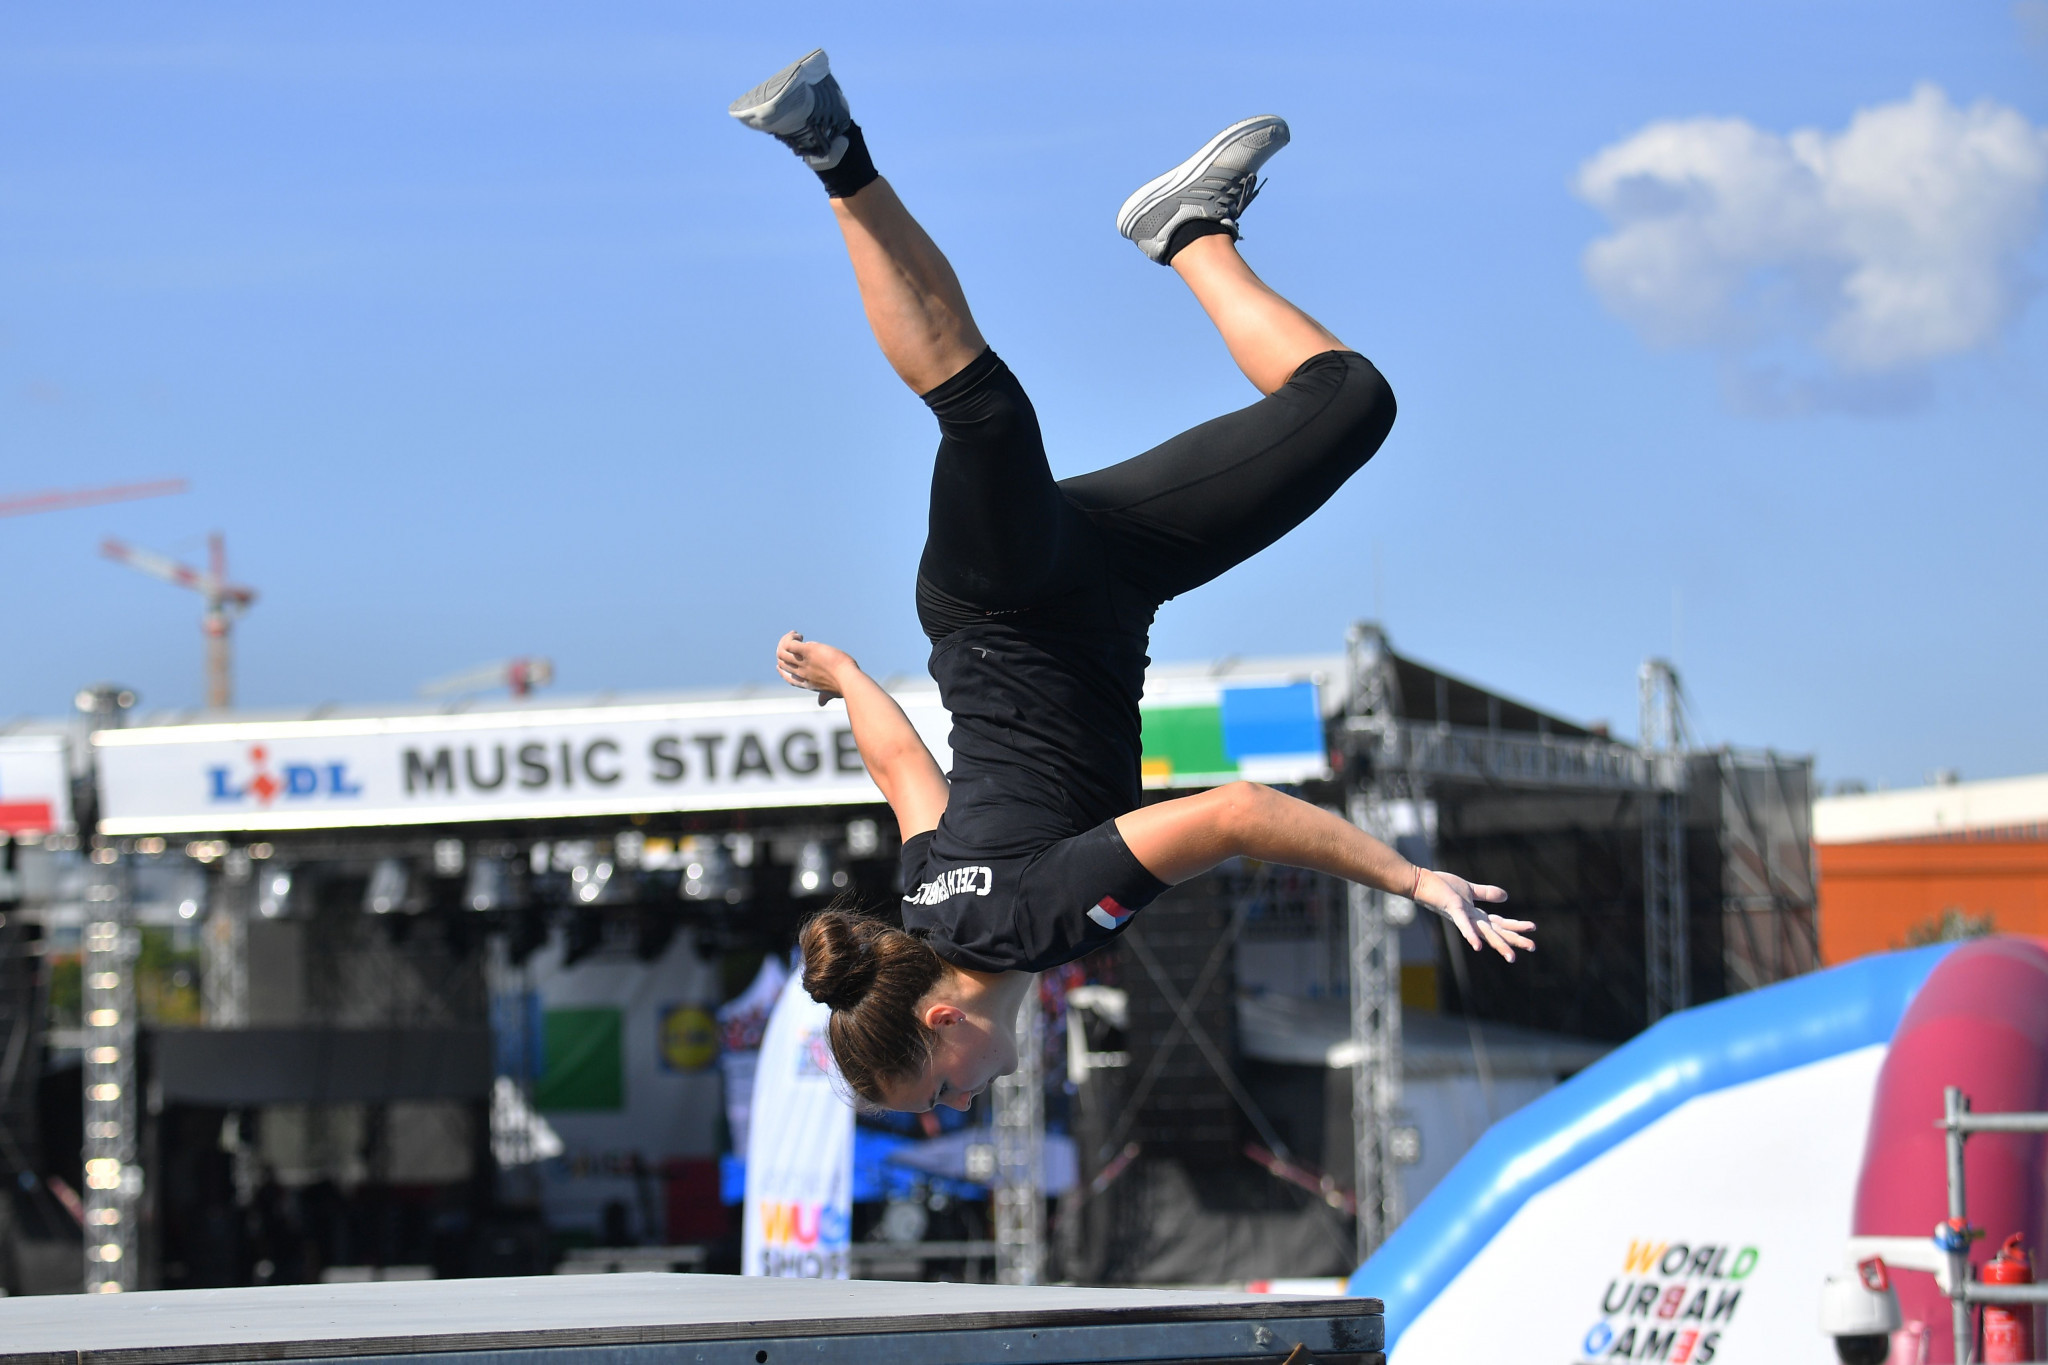 Parkour featured at the World Urban Games last year, with the FIG keen to see it added to the Olympic programme ©Getty Images